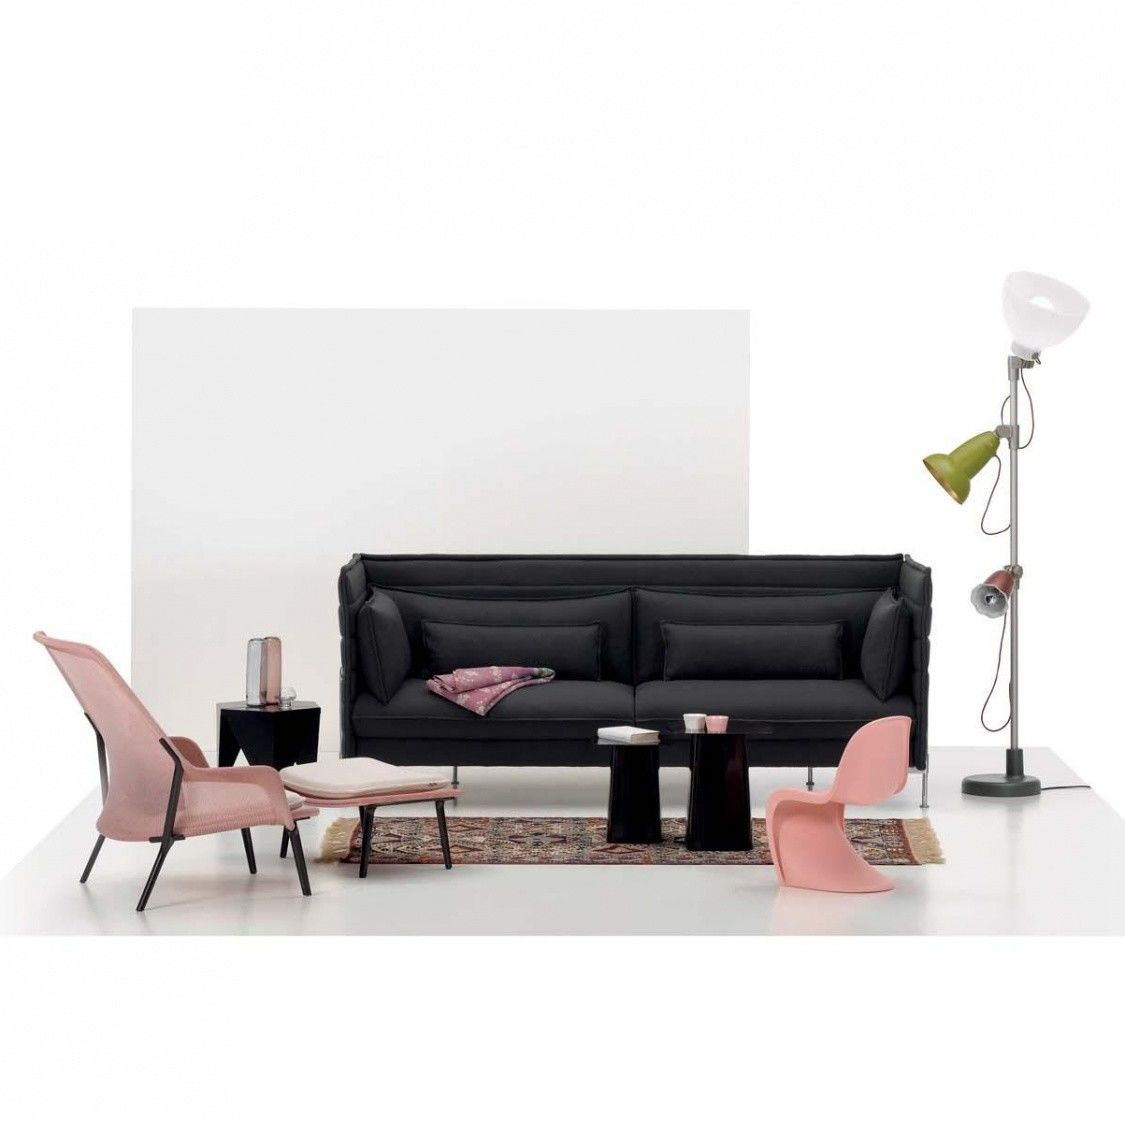 panton junior kinderstuhl vitra st hle sitzm bel m bel. Black Bedroom Furniture Sets. Home Design Ideas